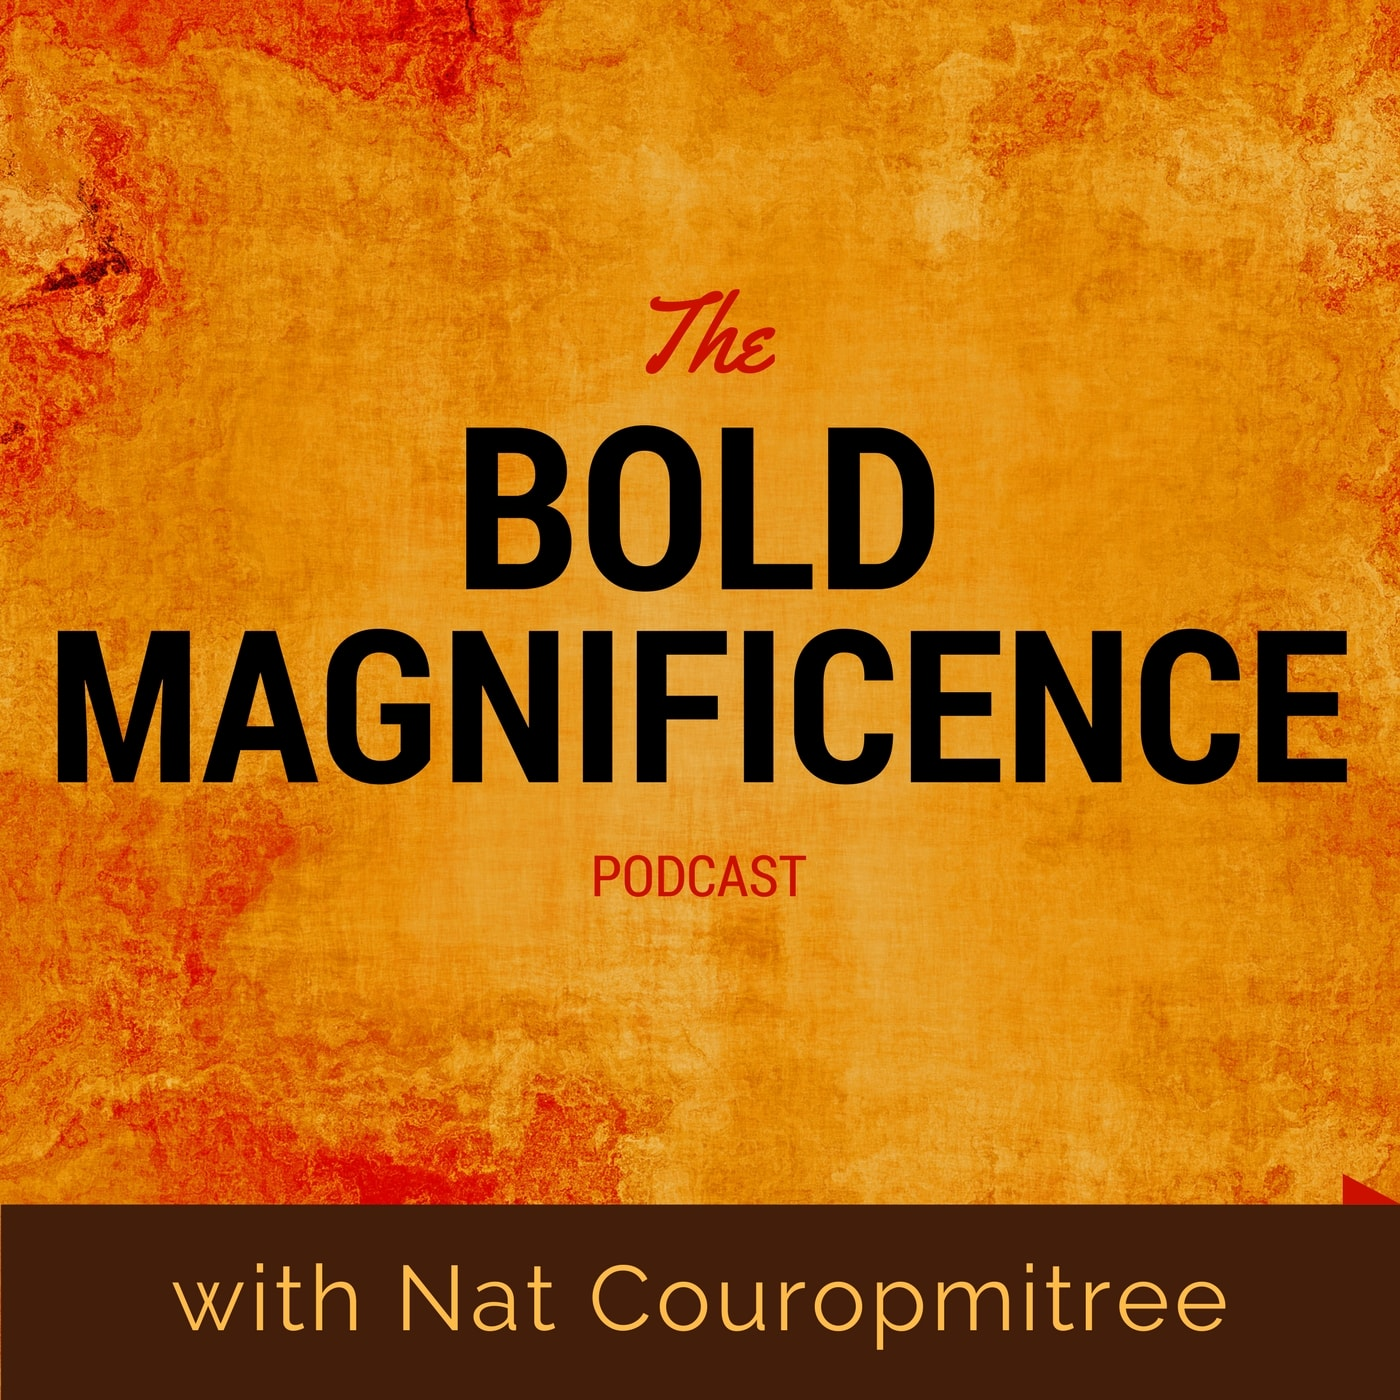 Bold Magnificence Podcast-min.jpg